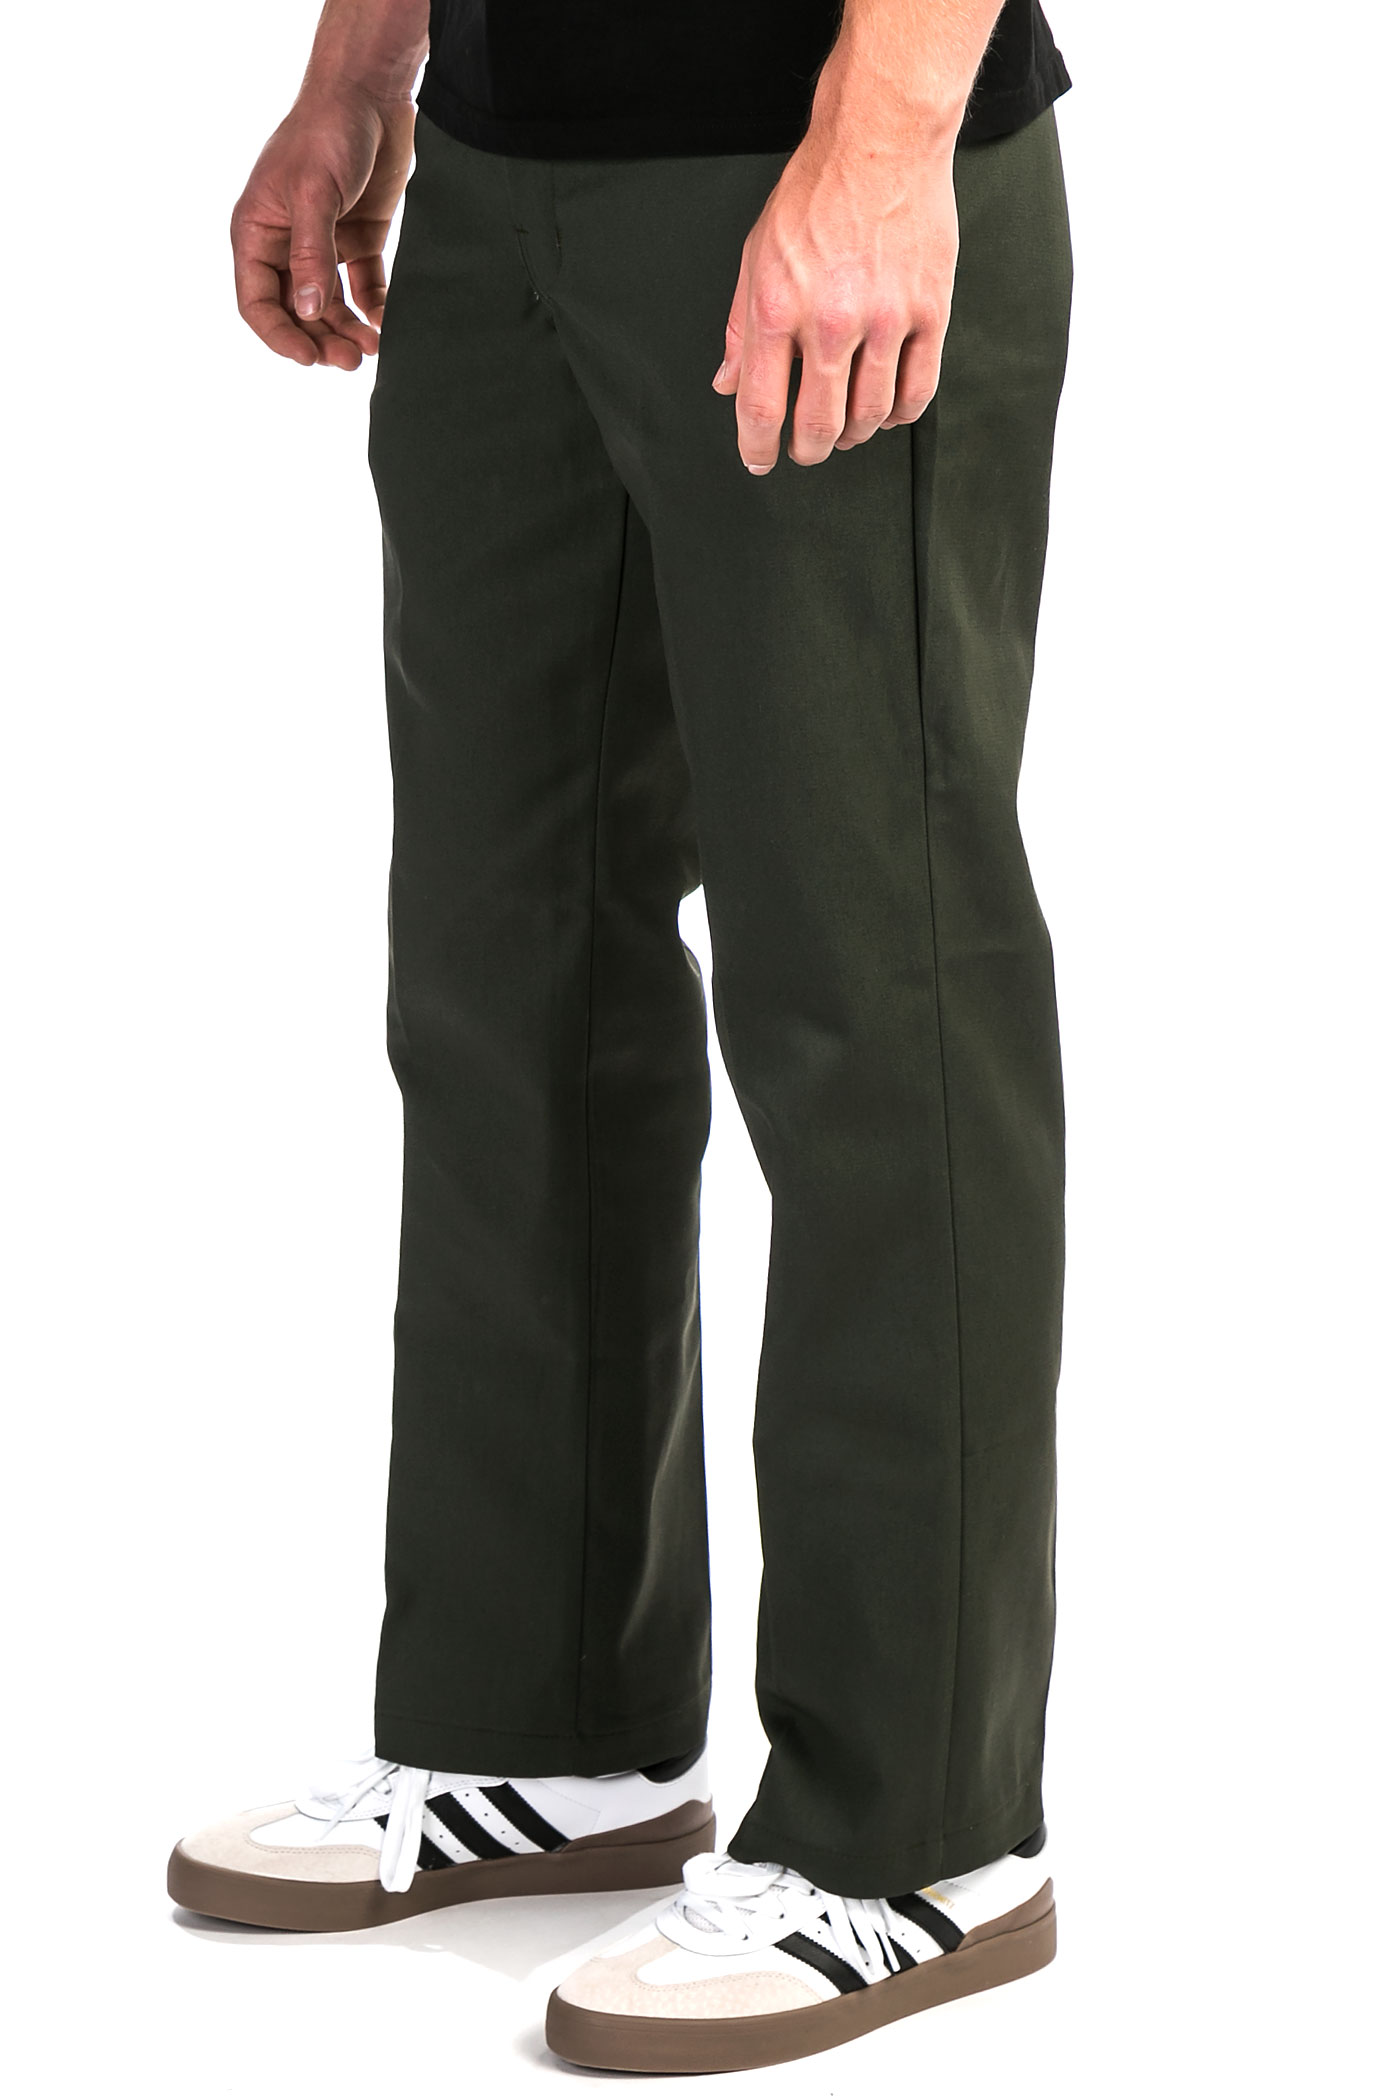 dickies o dog 874 workpant pantalons olive green achetez